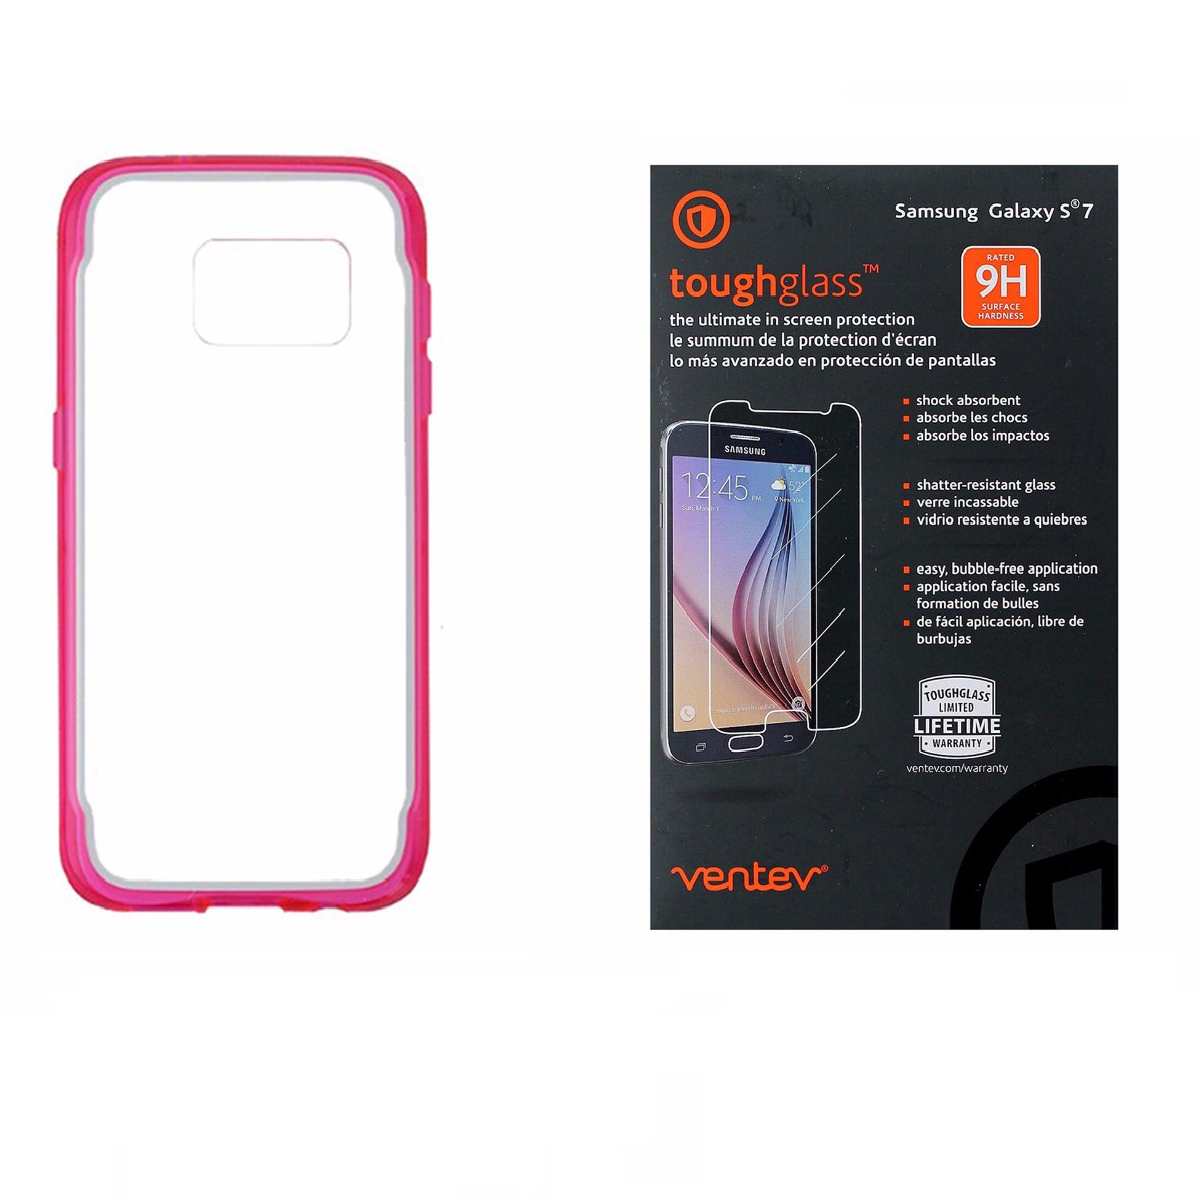 Griffin Clear/Pink Case + Ventev Glass Screen Protector for Samsung Galaxy S7